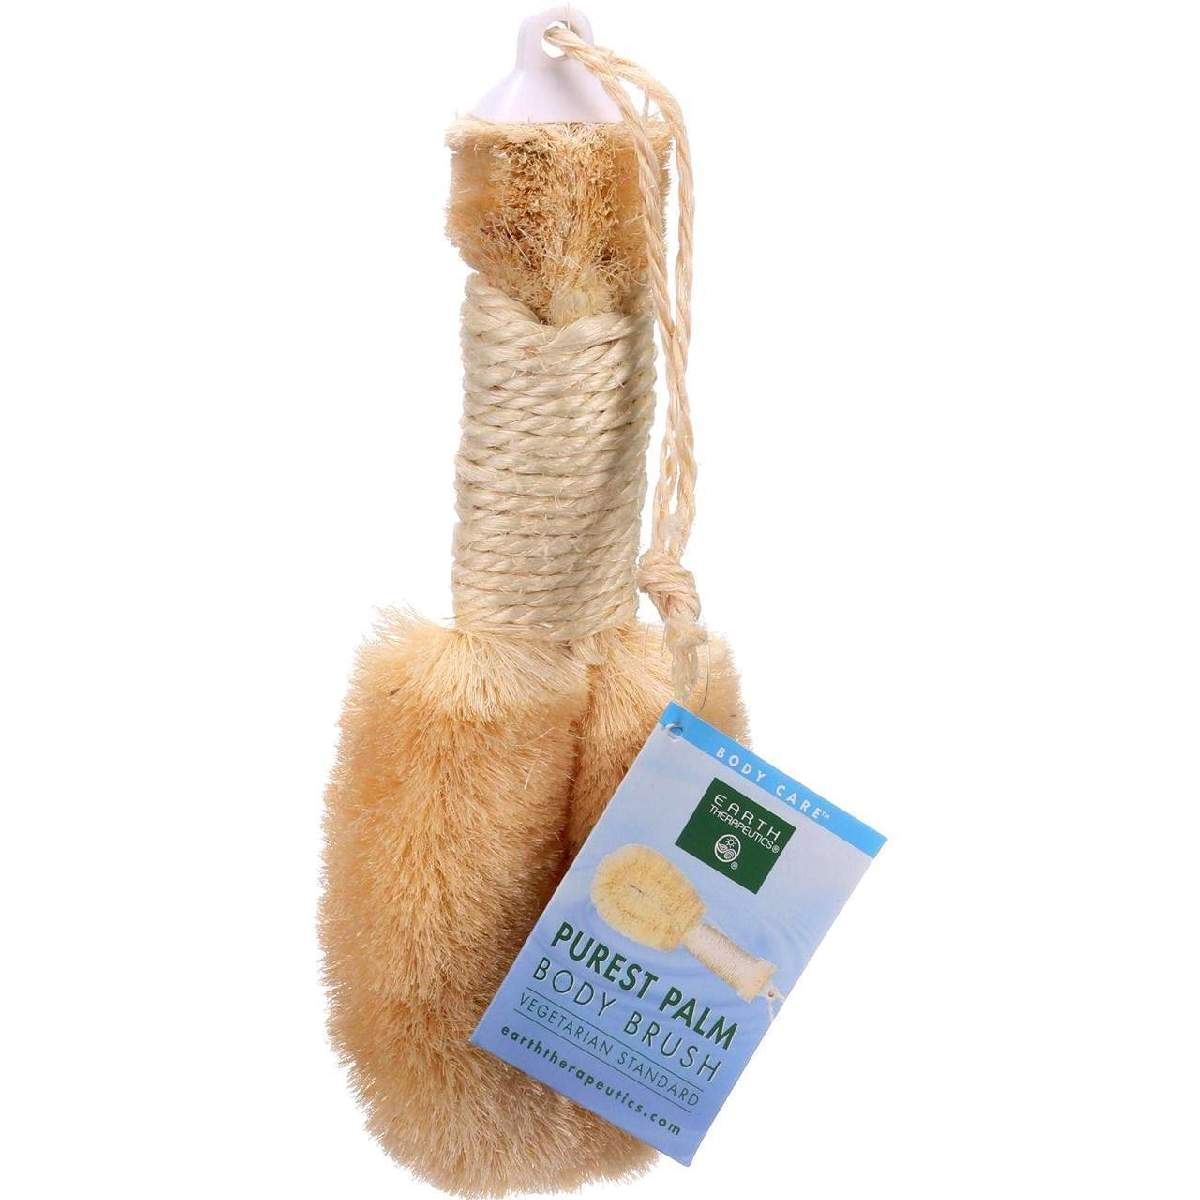 Earth Therapeutics Body Brush - Purest Palm - 1